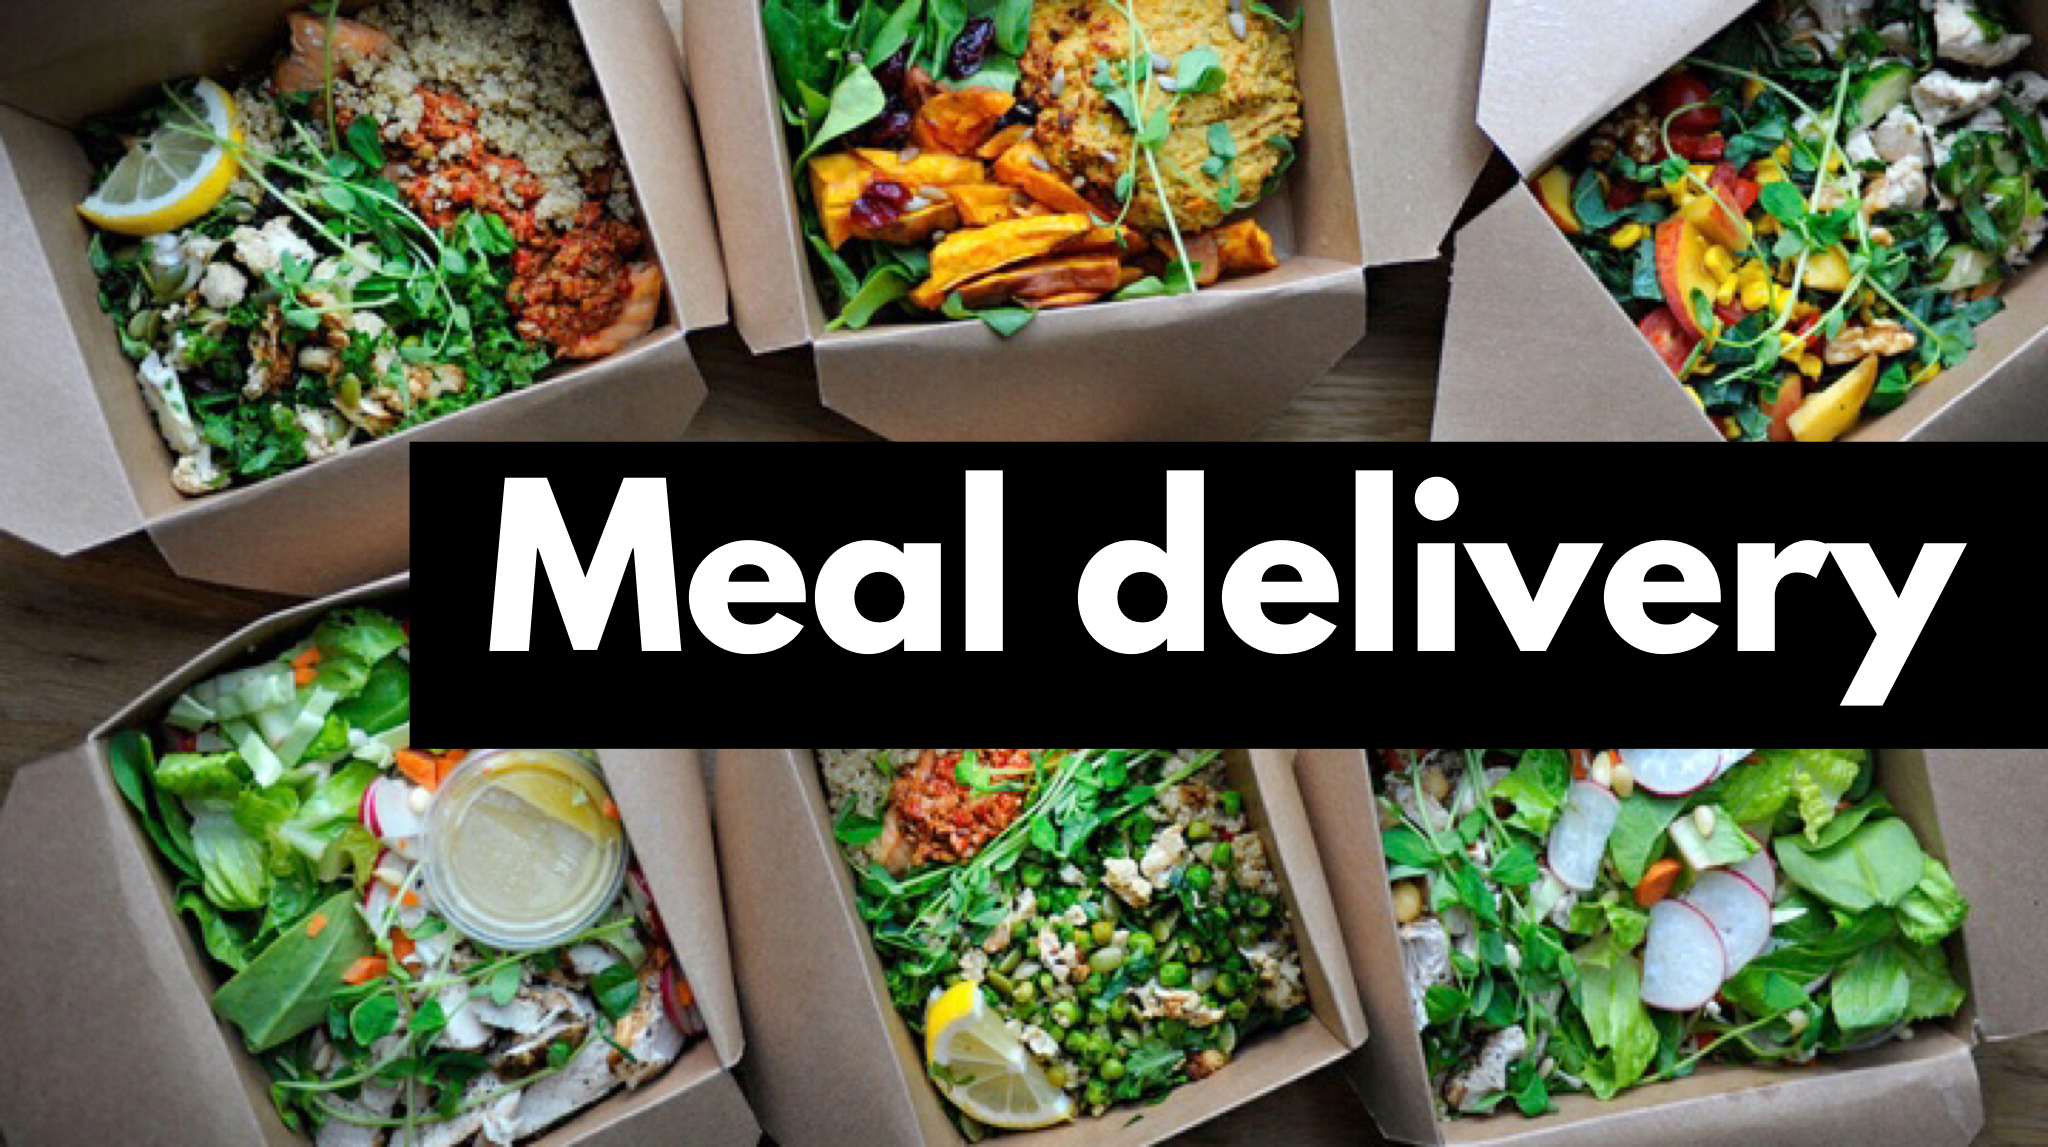 FROM OUR KITCHEN TO YOUR TABLE –  We Shop, Cook and Deliver. You enjoy healthy meals delivered fresh!   Wether you're trying to lose weight, eat organic, or avoid the hassle of last-minute meals you deserve better!  Now you can eat-clean in smart, affordable way!  Your chef will offer seasonal ingredients, organic meat, fruit, vegetables and healthy fats, giving you the flavors and quality you deserve.  The average cost of hiring a chef for meal delivery is $150–$350+ per delivery and you should receive 3 meals, 2 salads and 2 snacks per person.  Are you ready for a better way to eat?  Hire a chef for meal delivery in  three   simple steps :   1. SCHEDULE COMPLIMENTARY CONSULTATION:  You'll talk with a vetted professional chef to discuss your preferences and meal delivery.  2. CHOOSE A MENU:  Discover the Chef's menus, then choose a meal program that best fits your lifestyle.  3. ENJOY:  Your Chef takes care of everything else, including shopping, cooking and delivery.